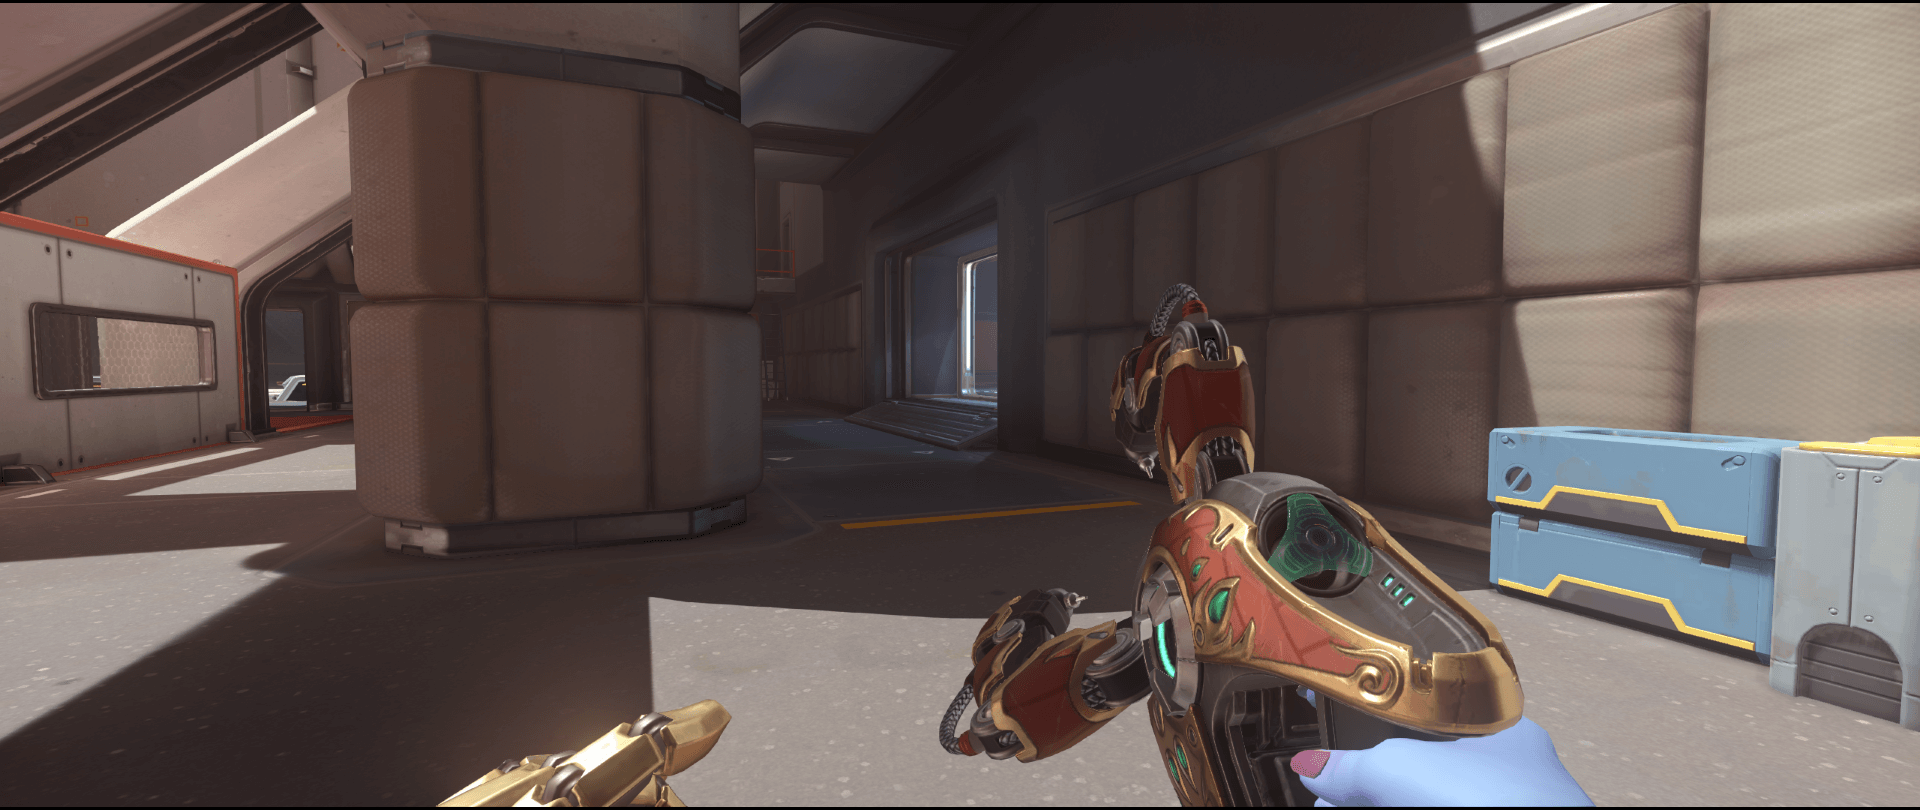 Symmetra shield generator spot Horizon Lunar Colony main second point right view.png